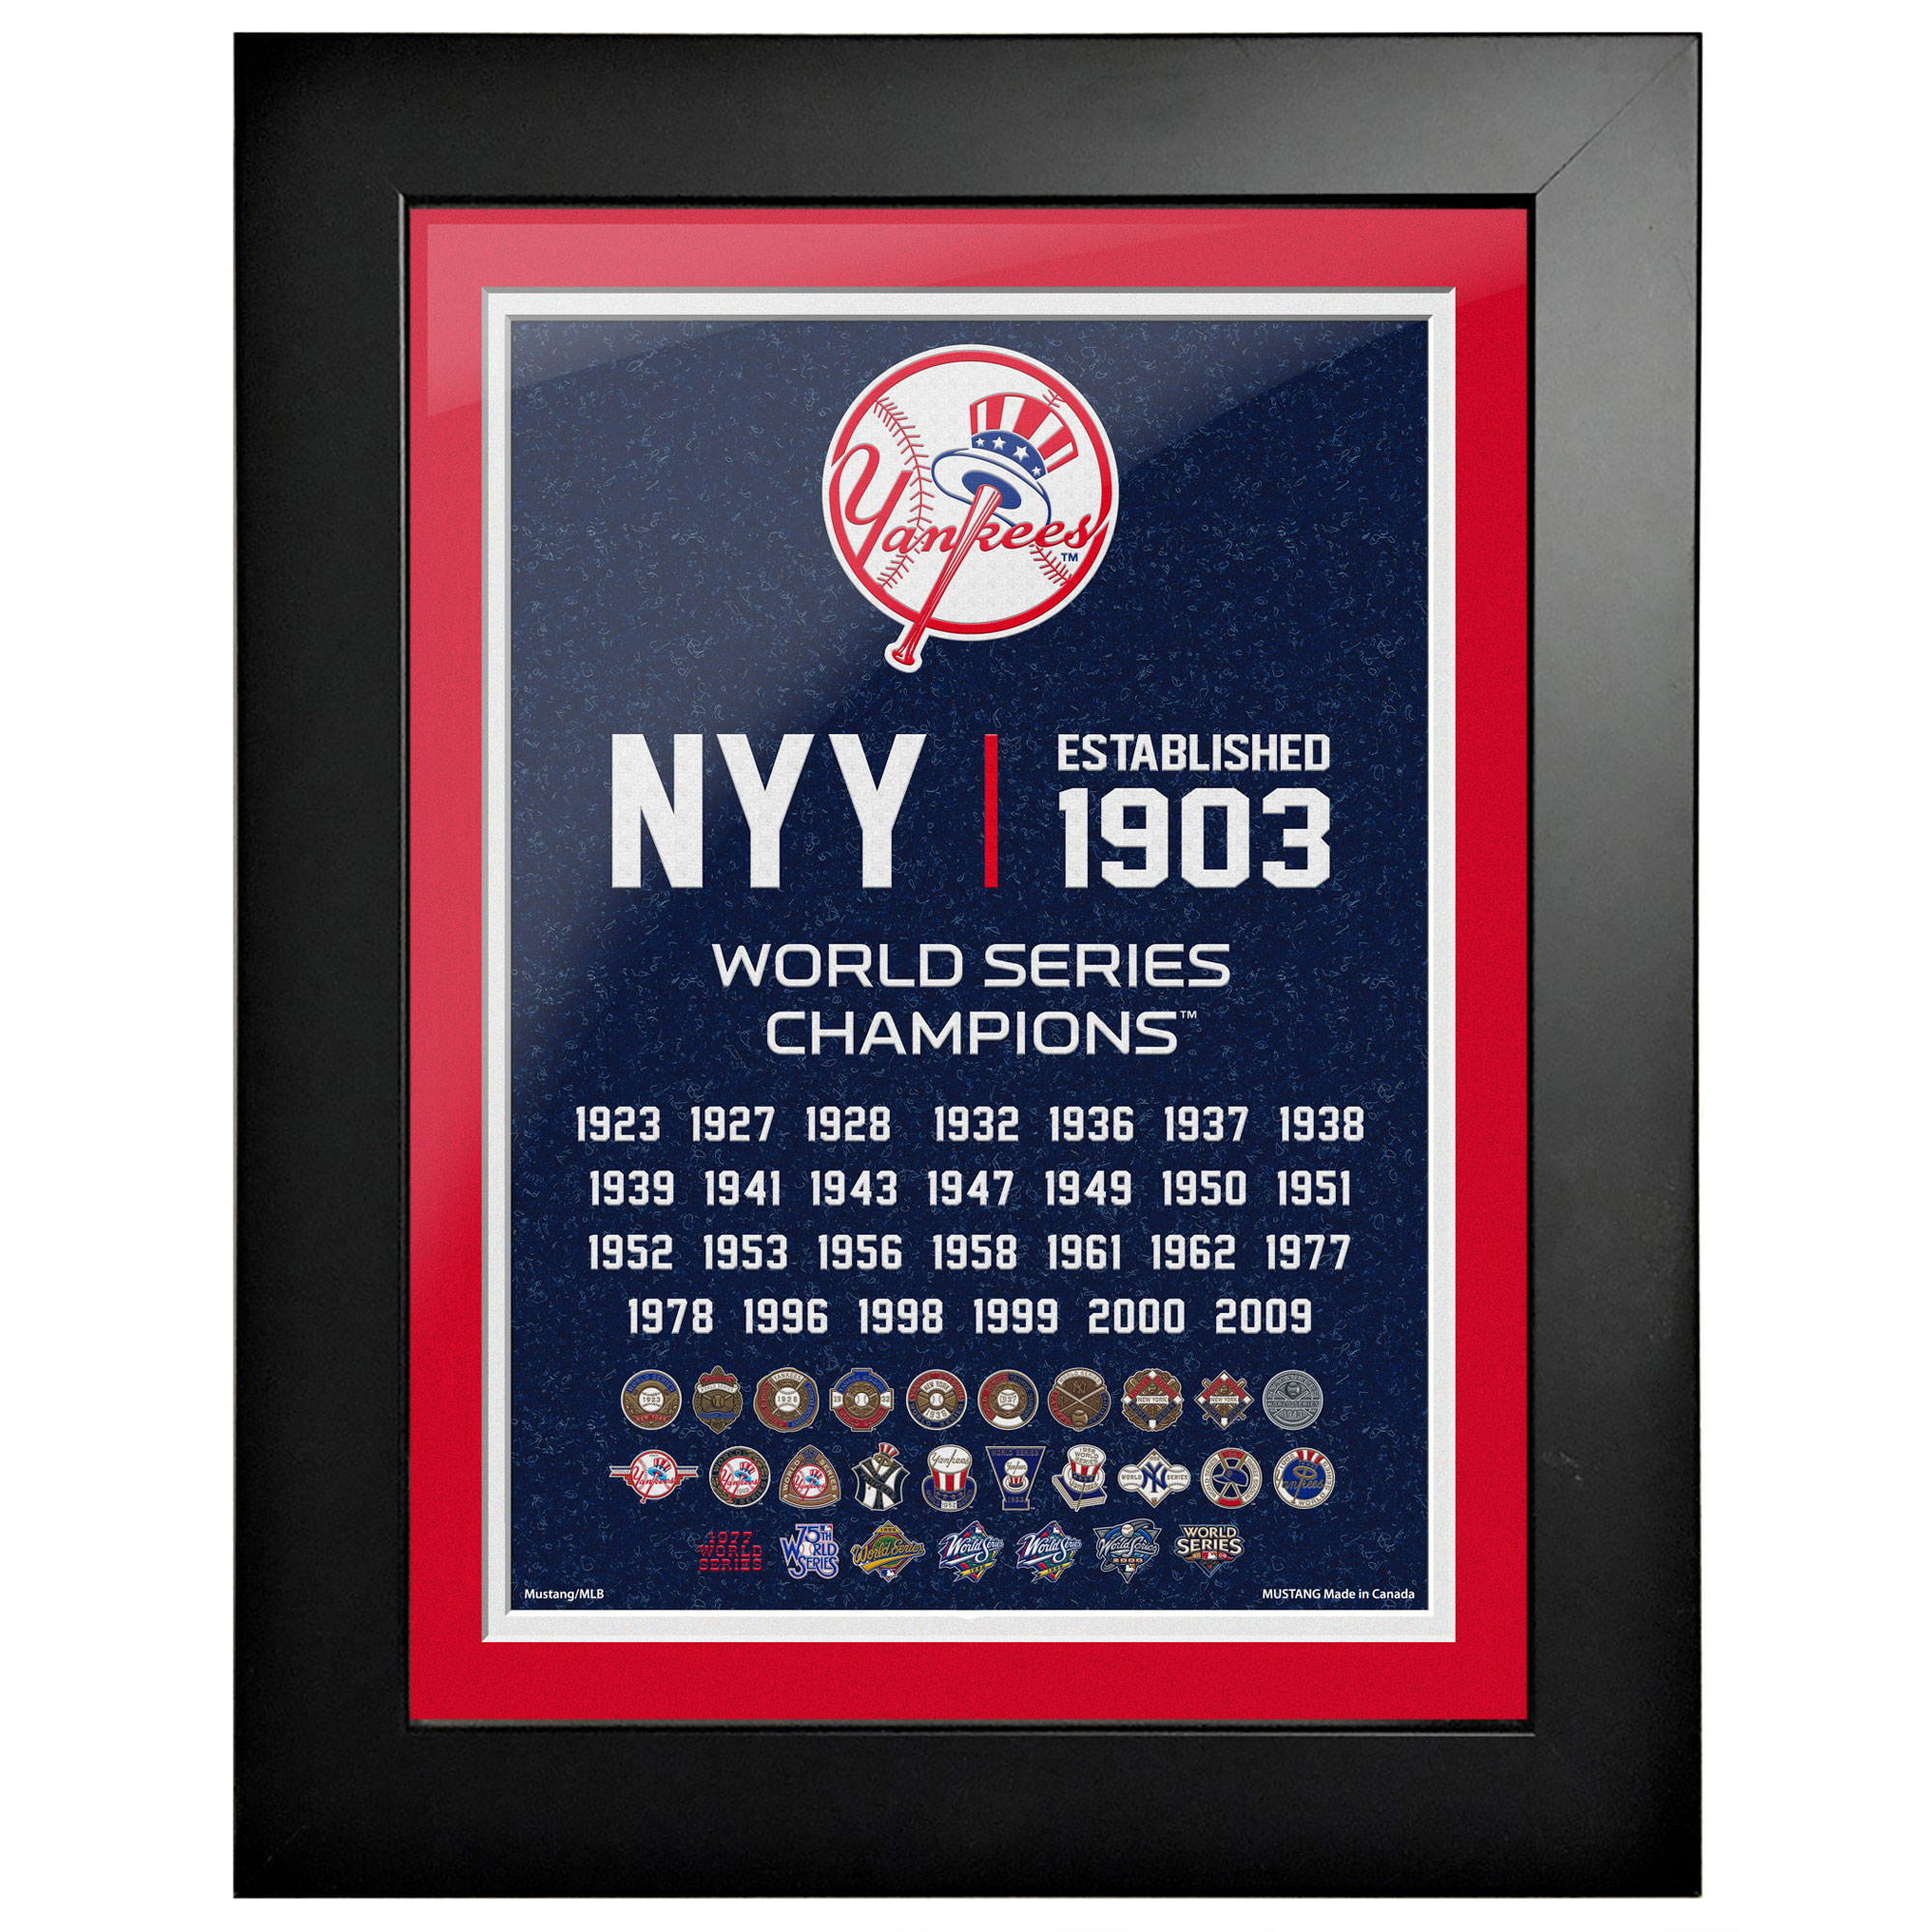 New York Yankees 27-Time World Series Champions 18'' x 14'' Empire Framed Art